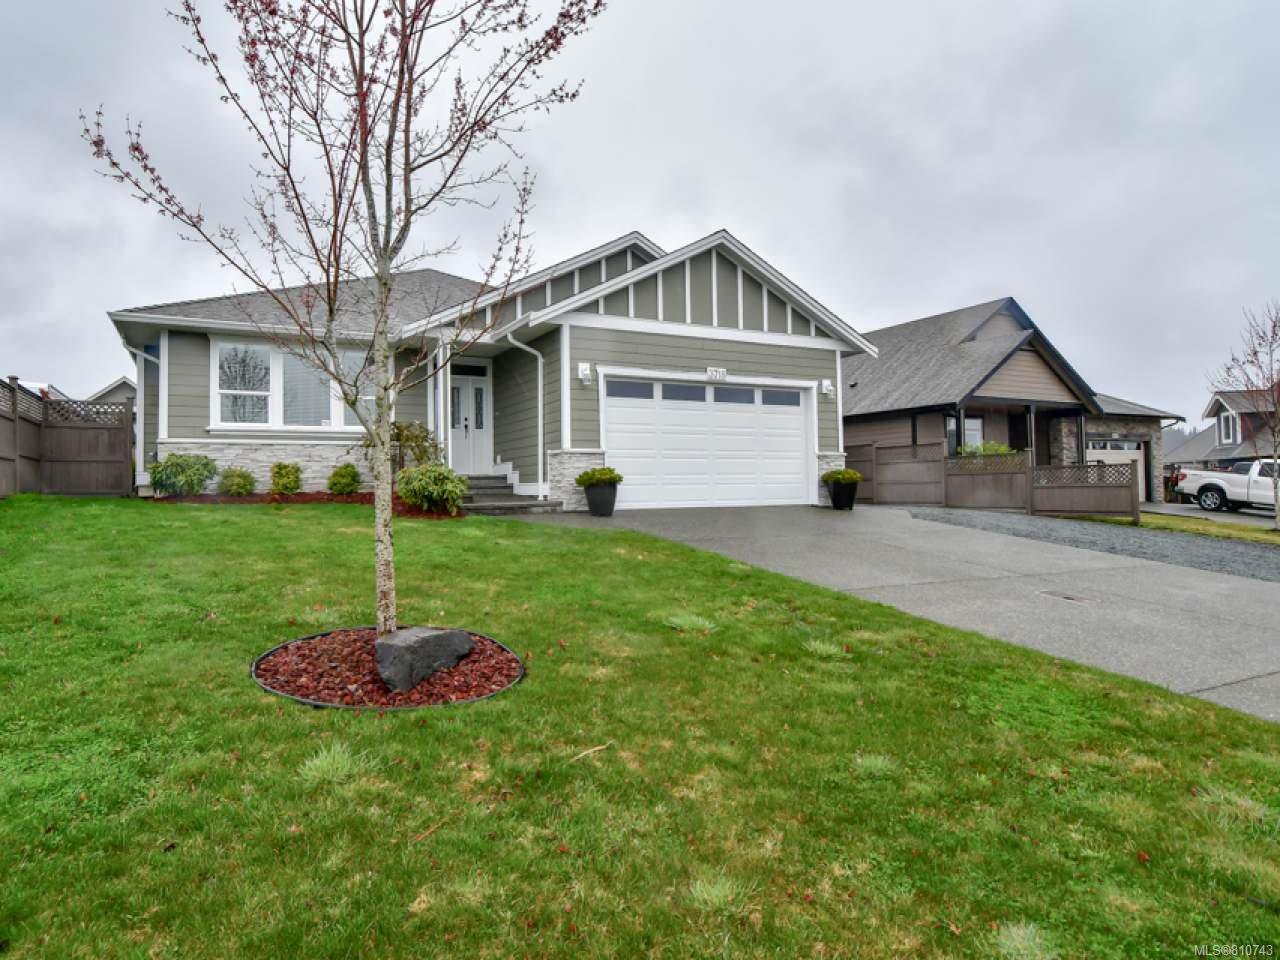 Main Photo: 3718 VALHALLA DRIVE in CAMPBELL RIVER: CR Willow Point House for sale (Campbell River)  : MLS®# 810743